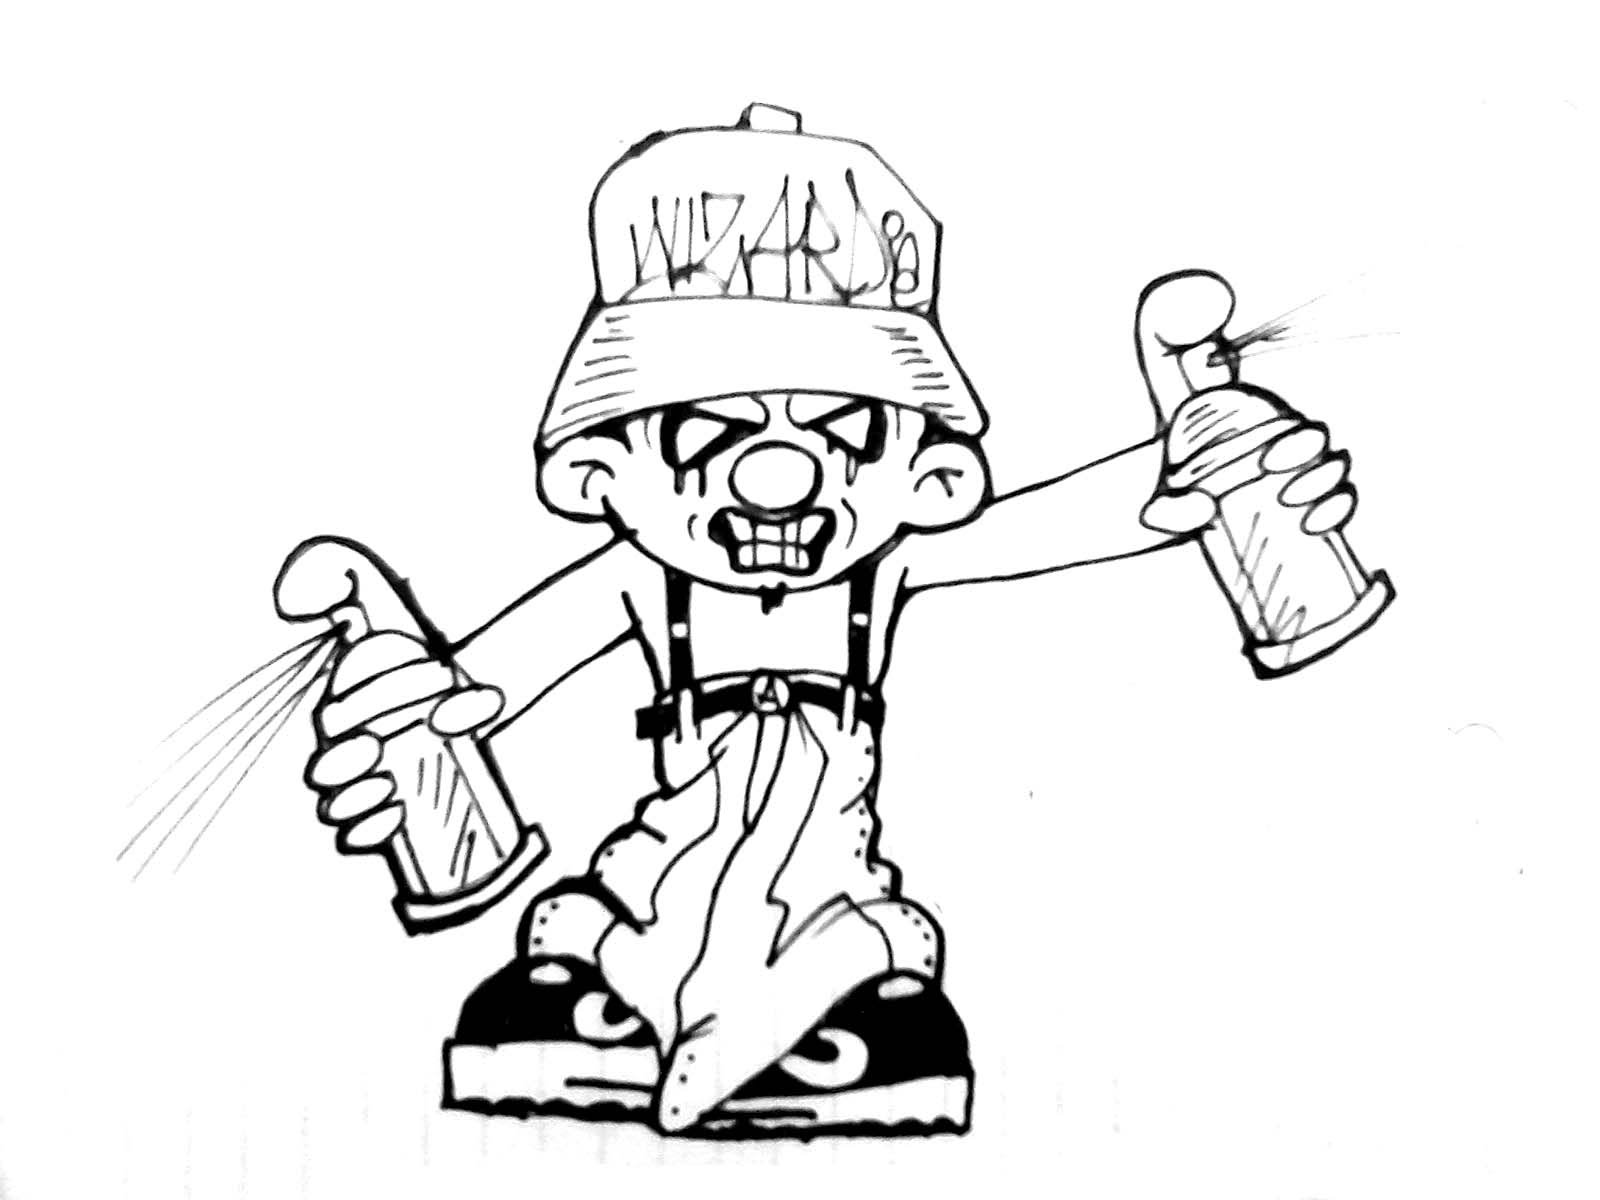 gangster scary clown coloring pages gangster drawing at getdrawings free download clown scary coloring pages gangster